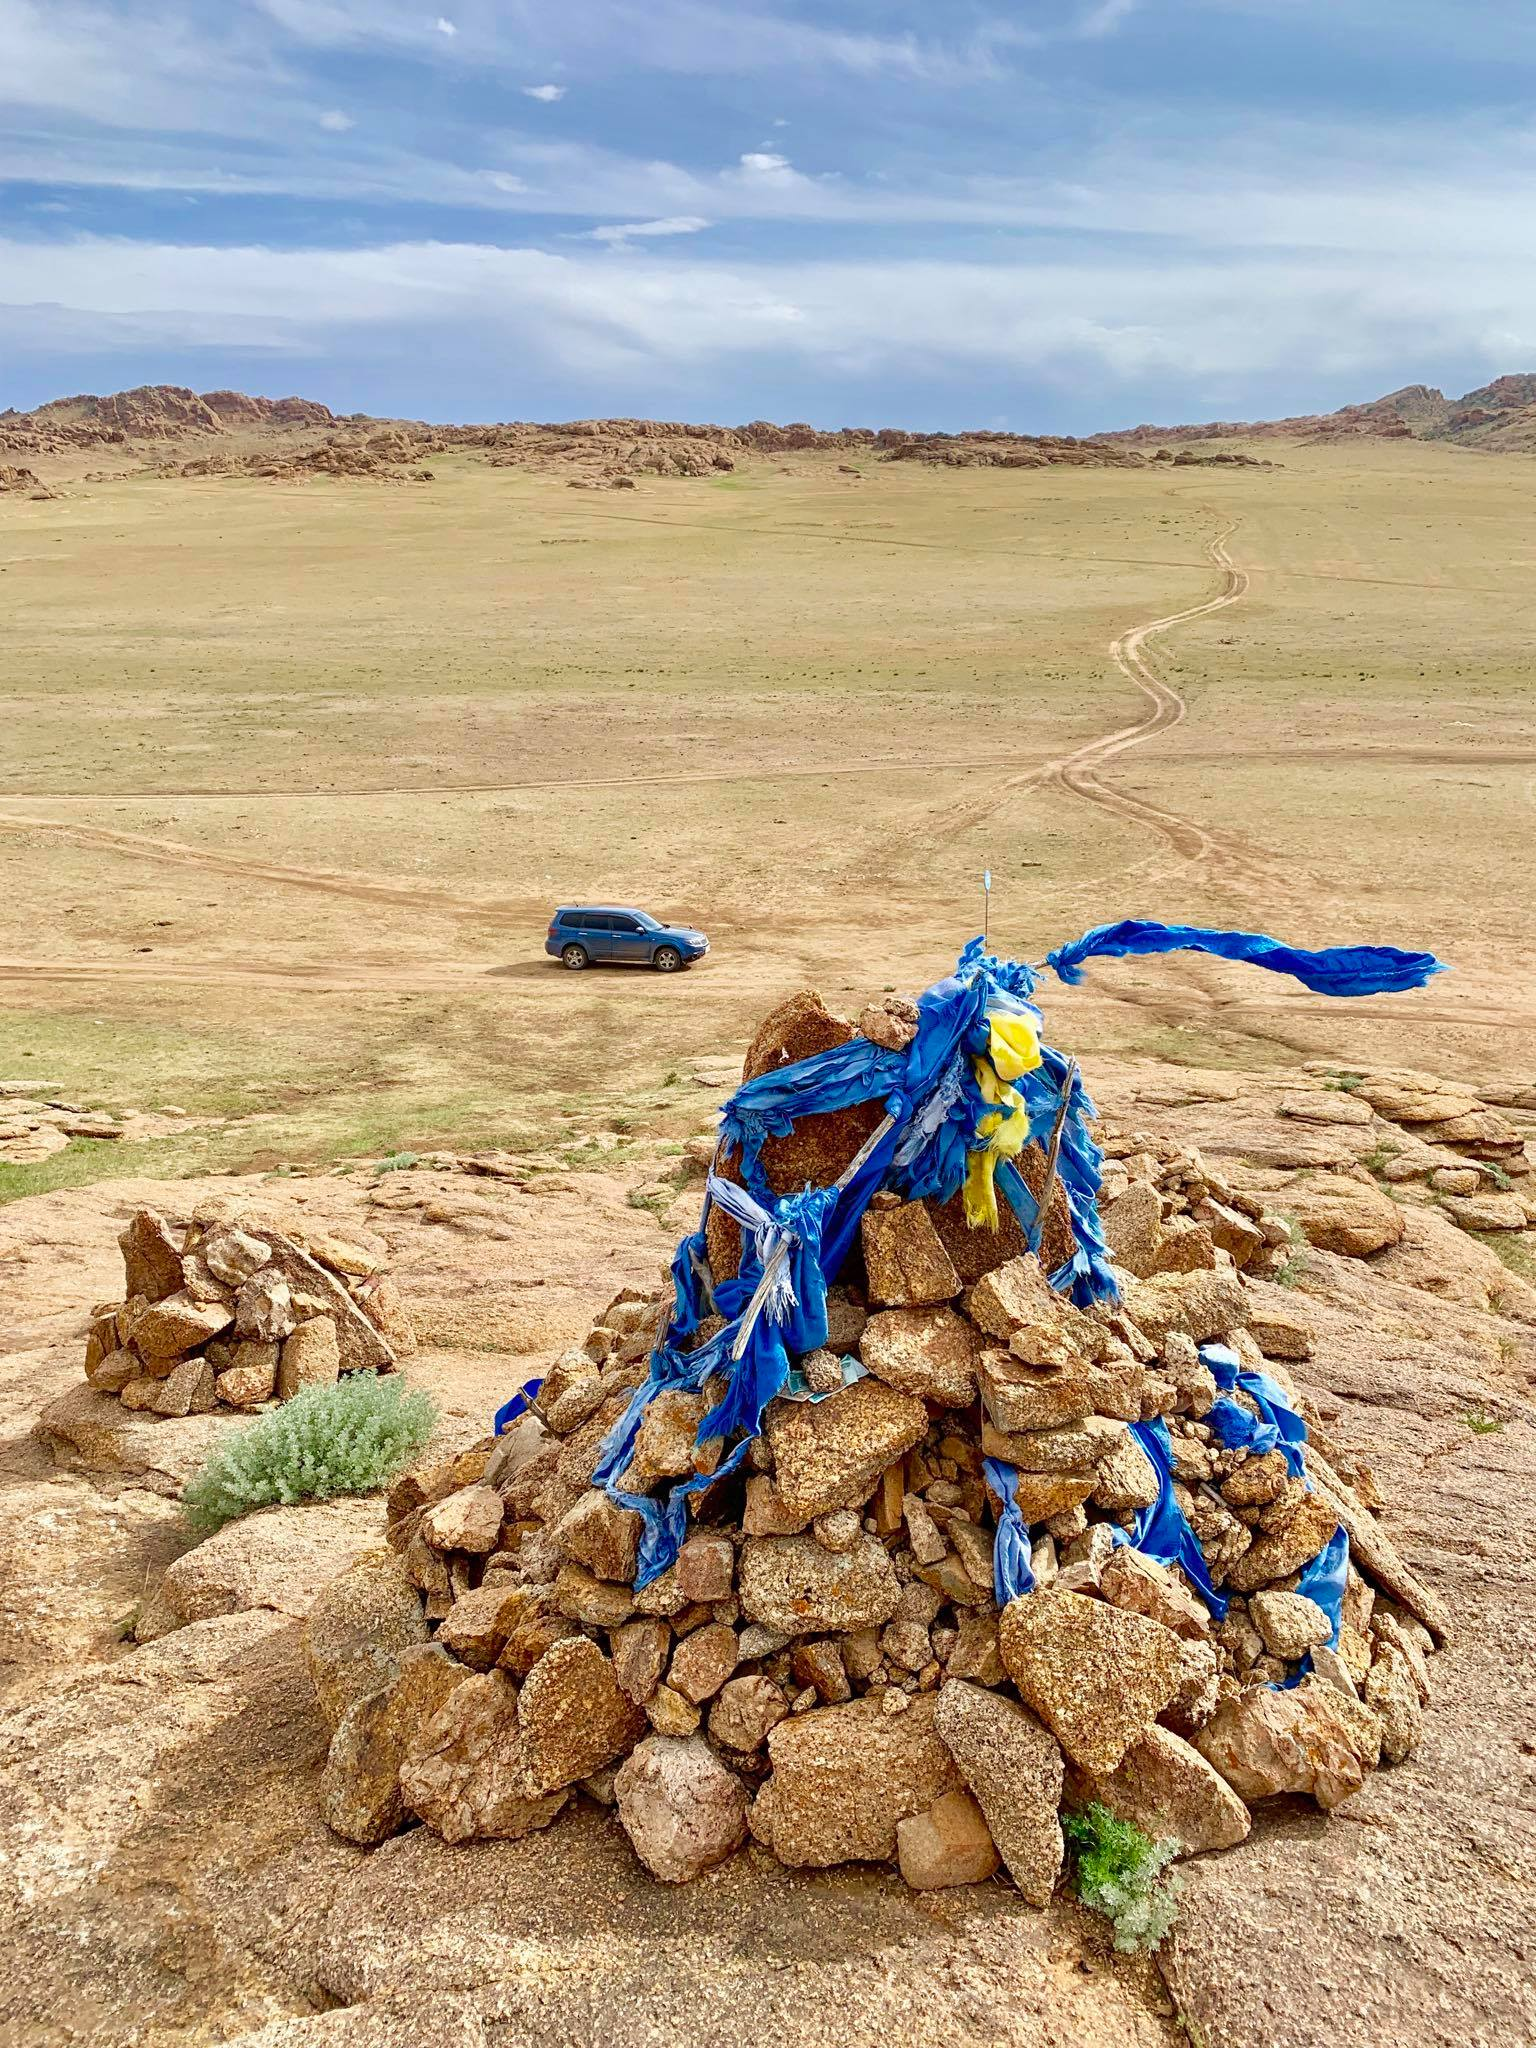 Kach Solo Travels in 2019 One of the hikes during my trip in Gobi desert3.jpg